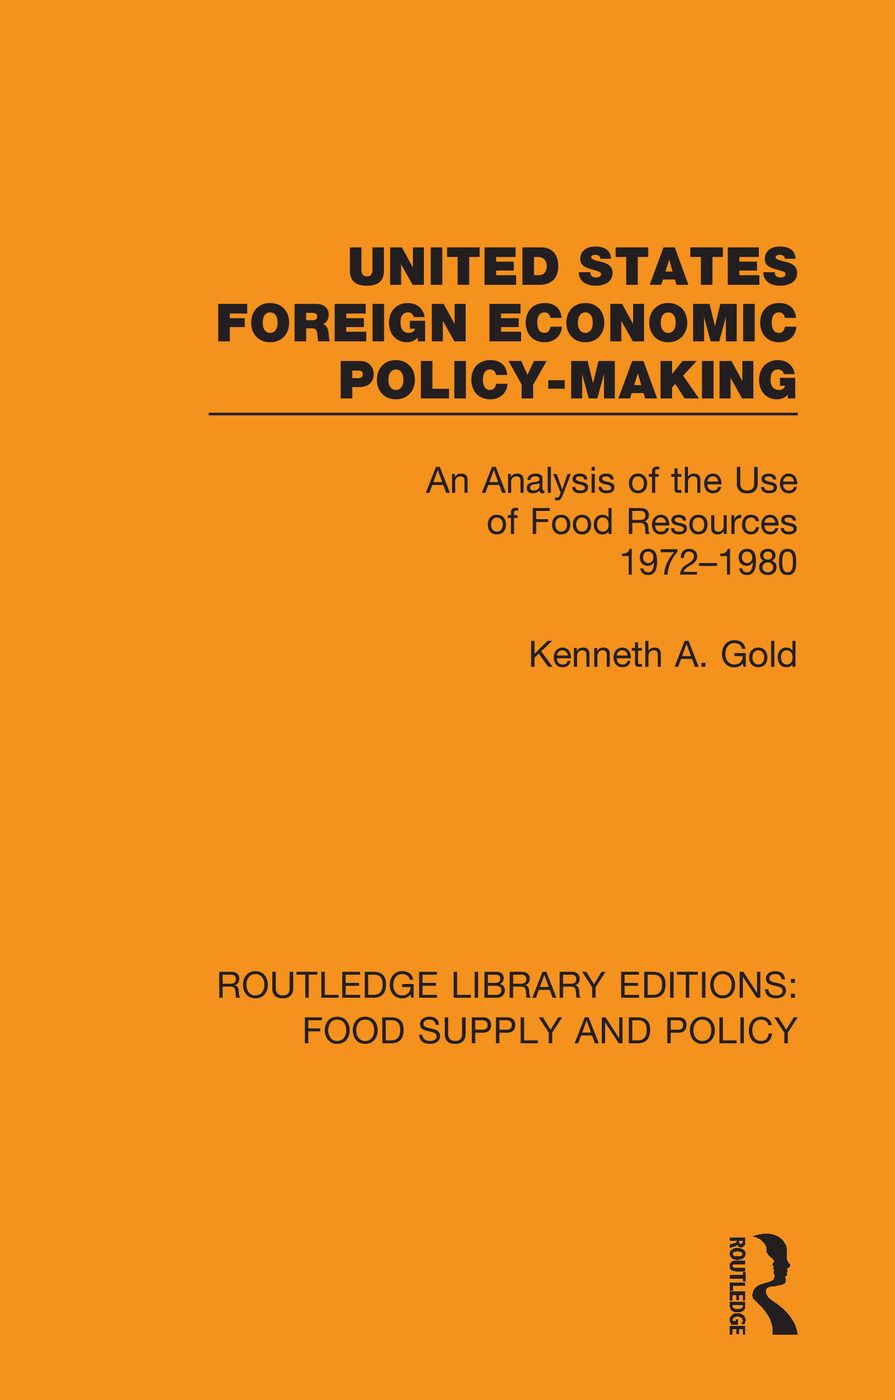 United States Foreign Economic Policy-making: An Analysis of the Use of Food Resources 1972-1980 book cover